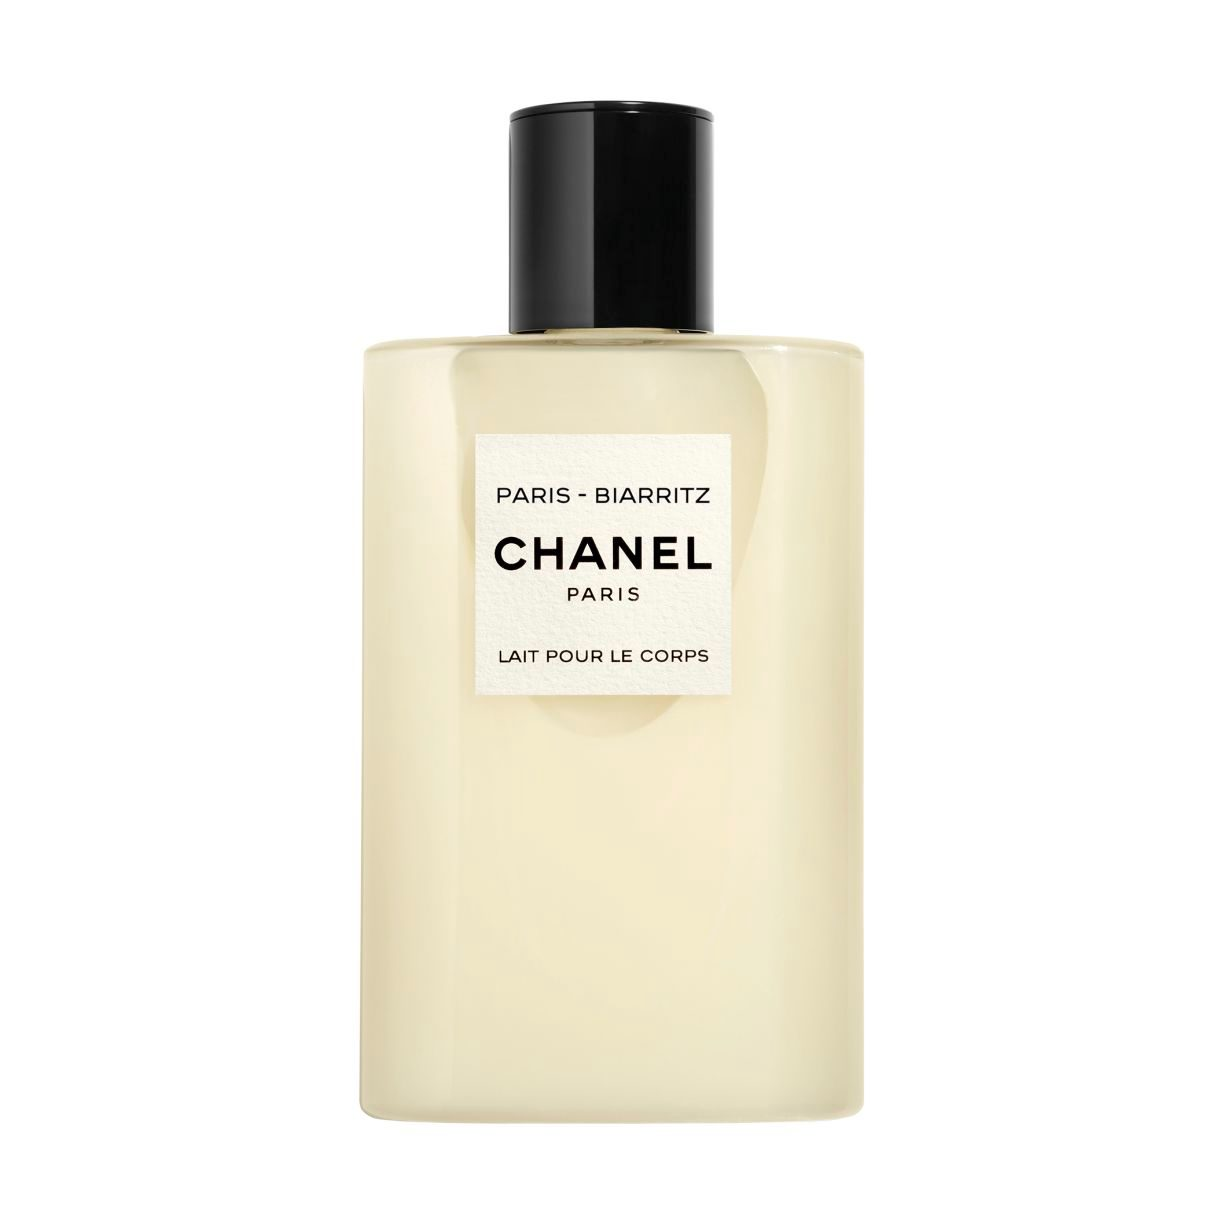 LES EAUX DE CHANEL PARIS - BIARRITZ - BODY LOTION 200ml